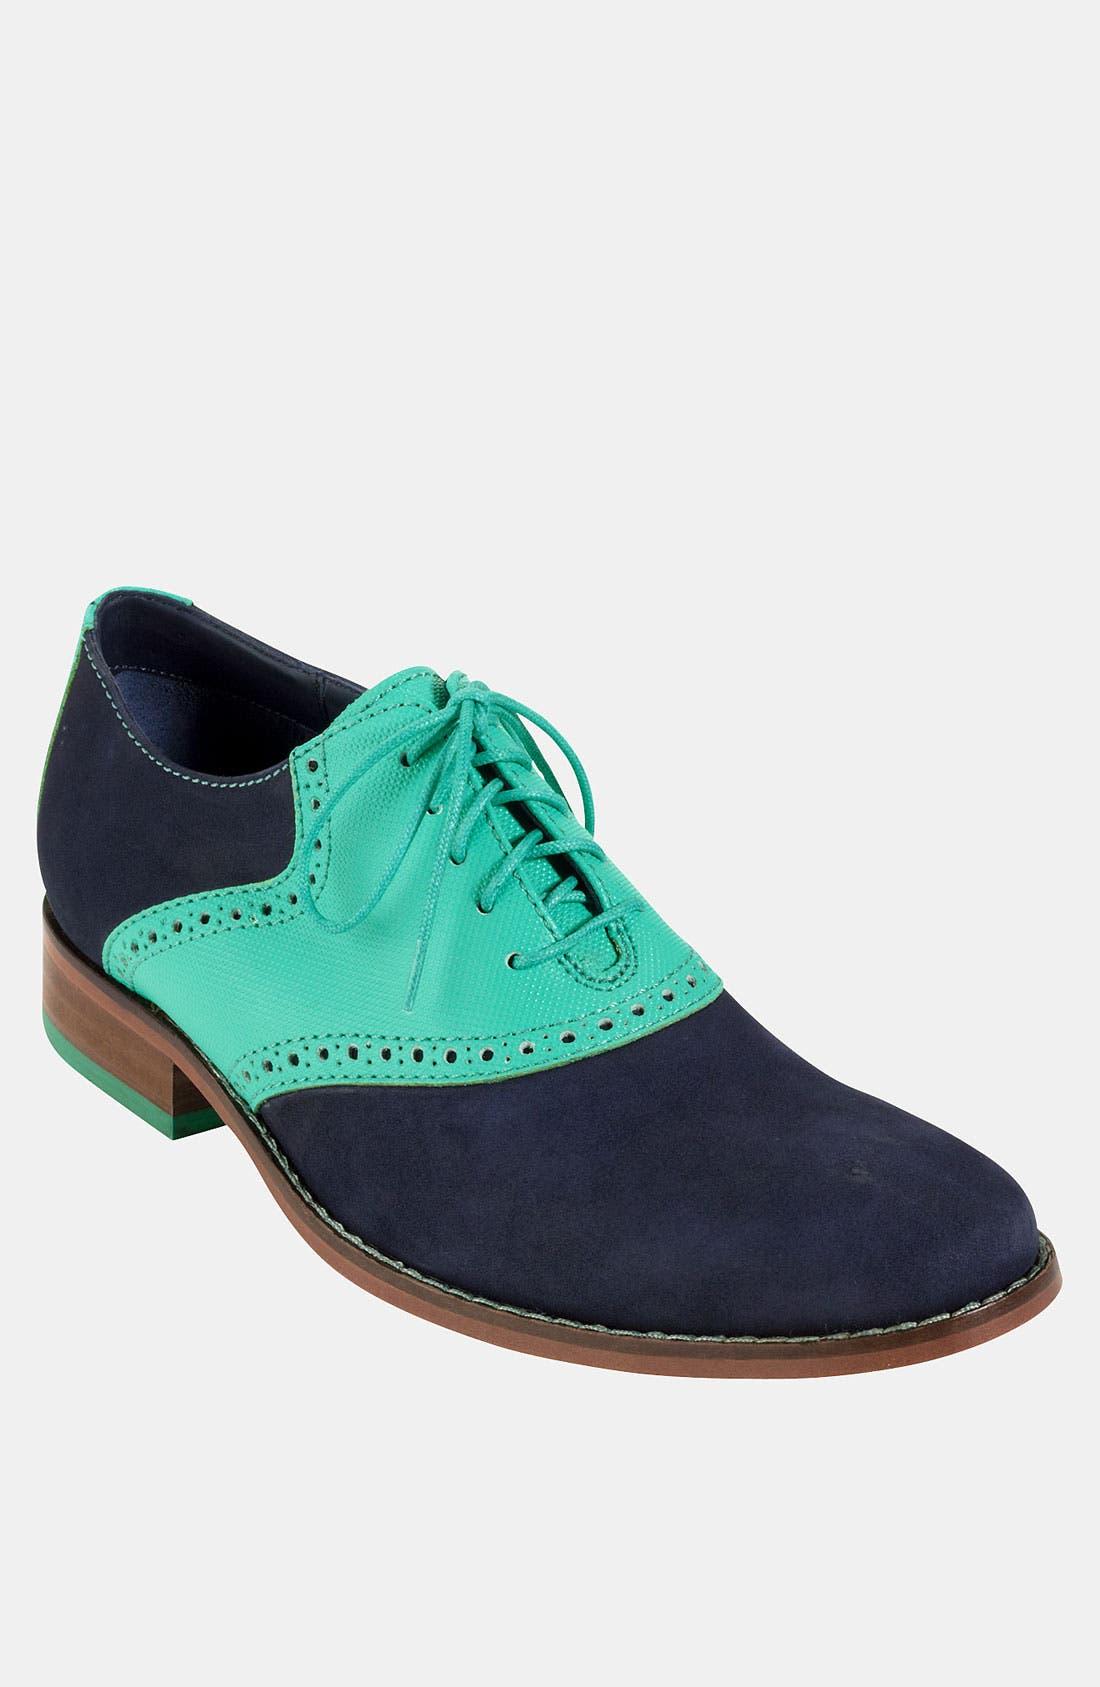 Main Image - Cole Haan 'Air Colton' Saddle Oxford